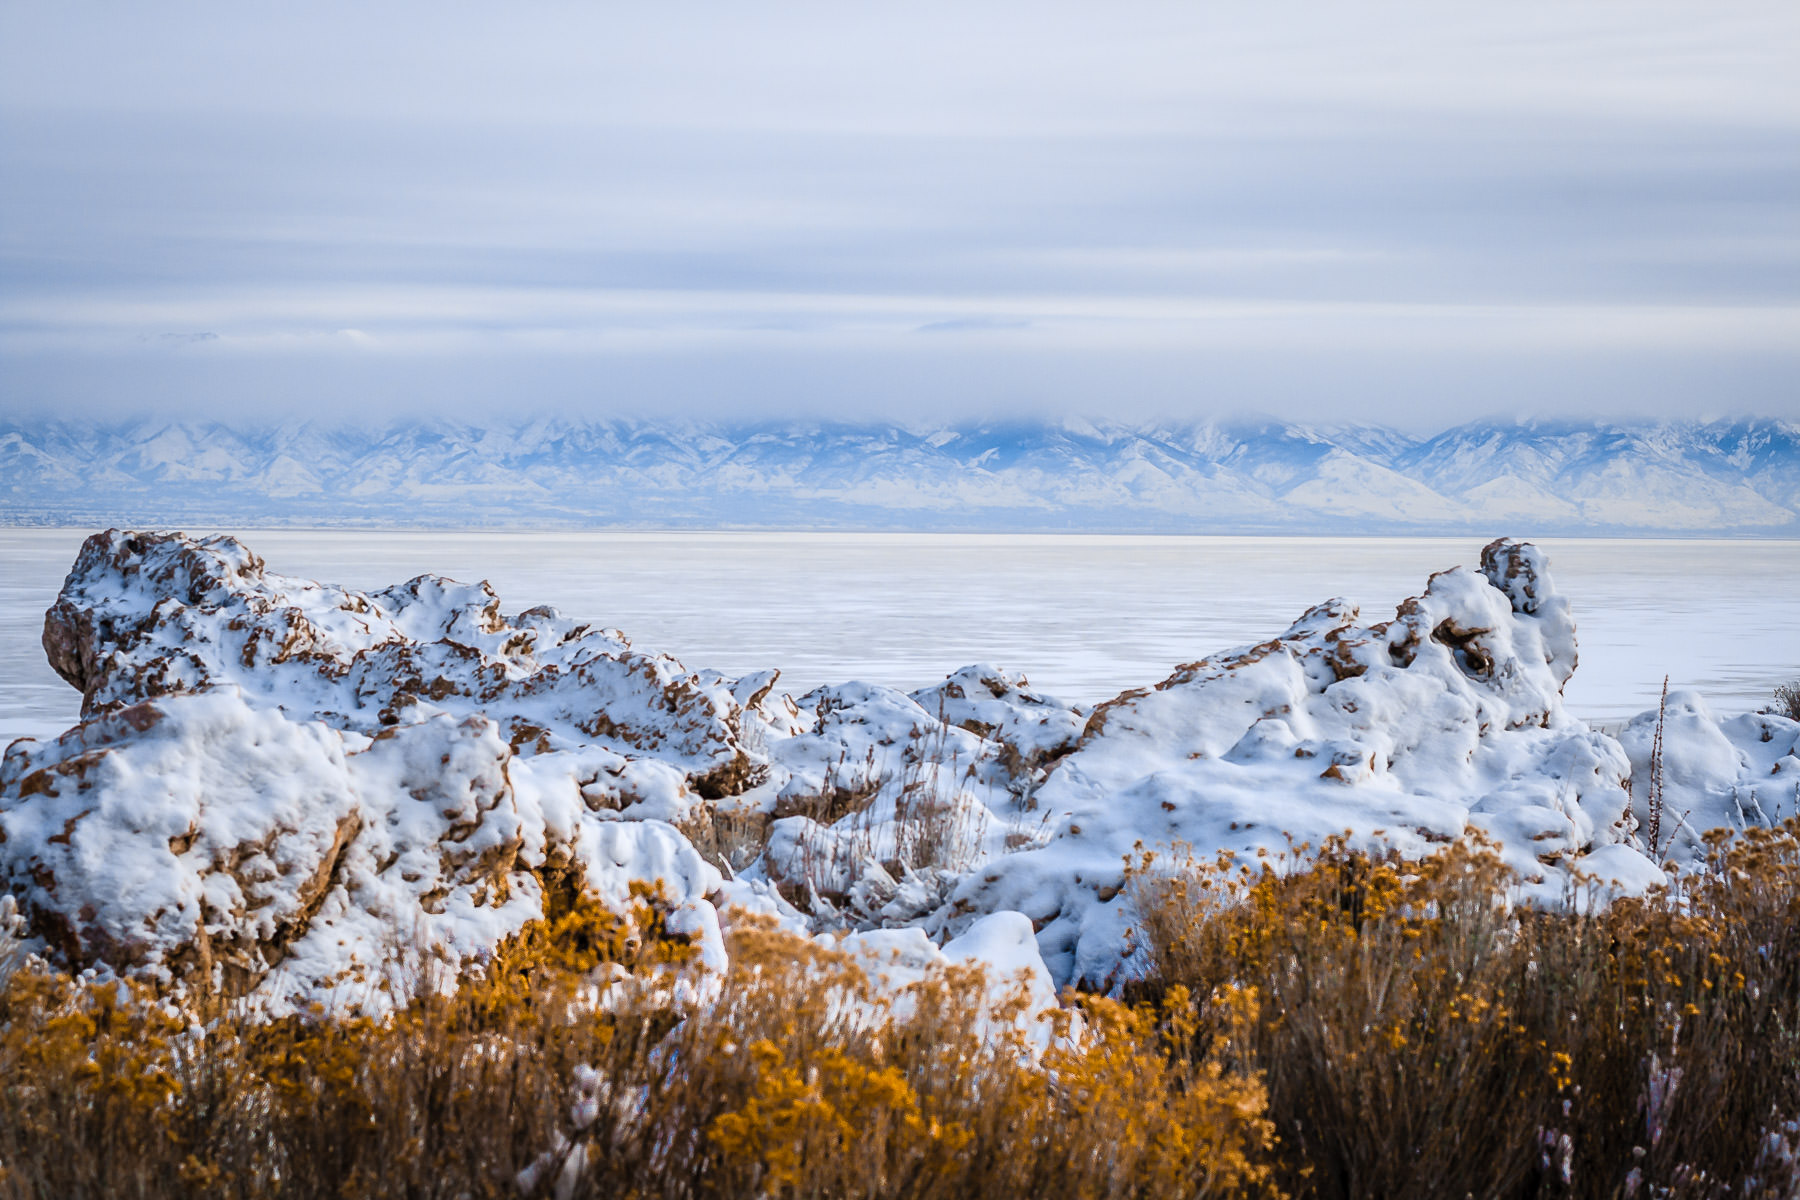 Distant winter mountains line the horizon as seen from the Great Salt Lake's Antelope Island, Utah.